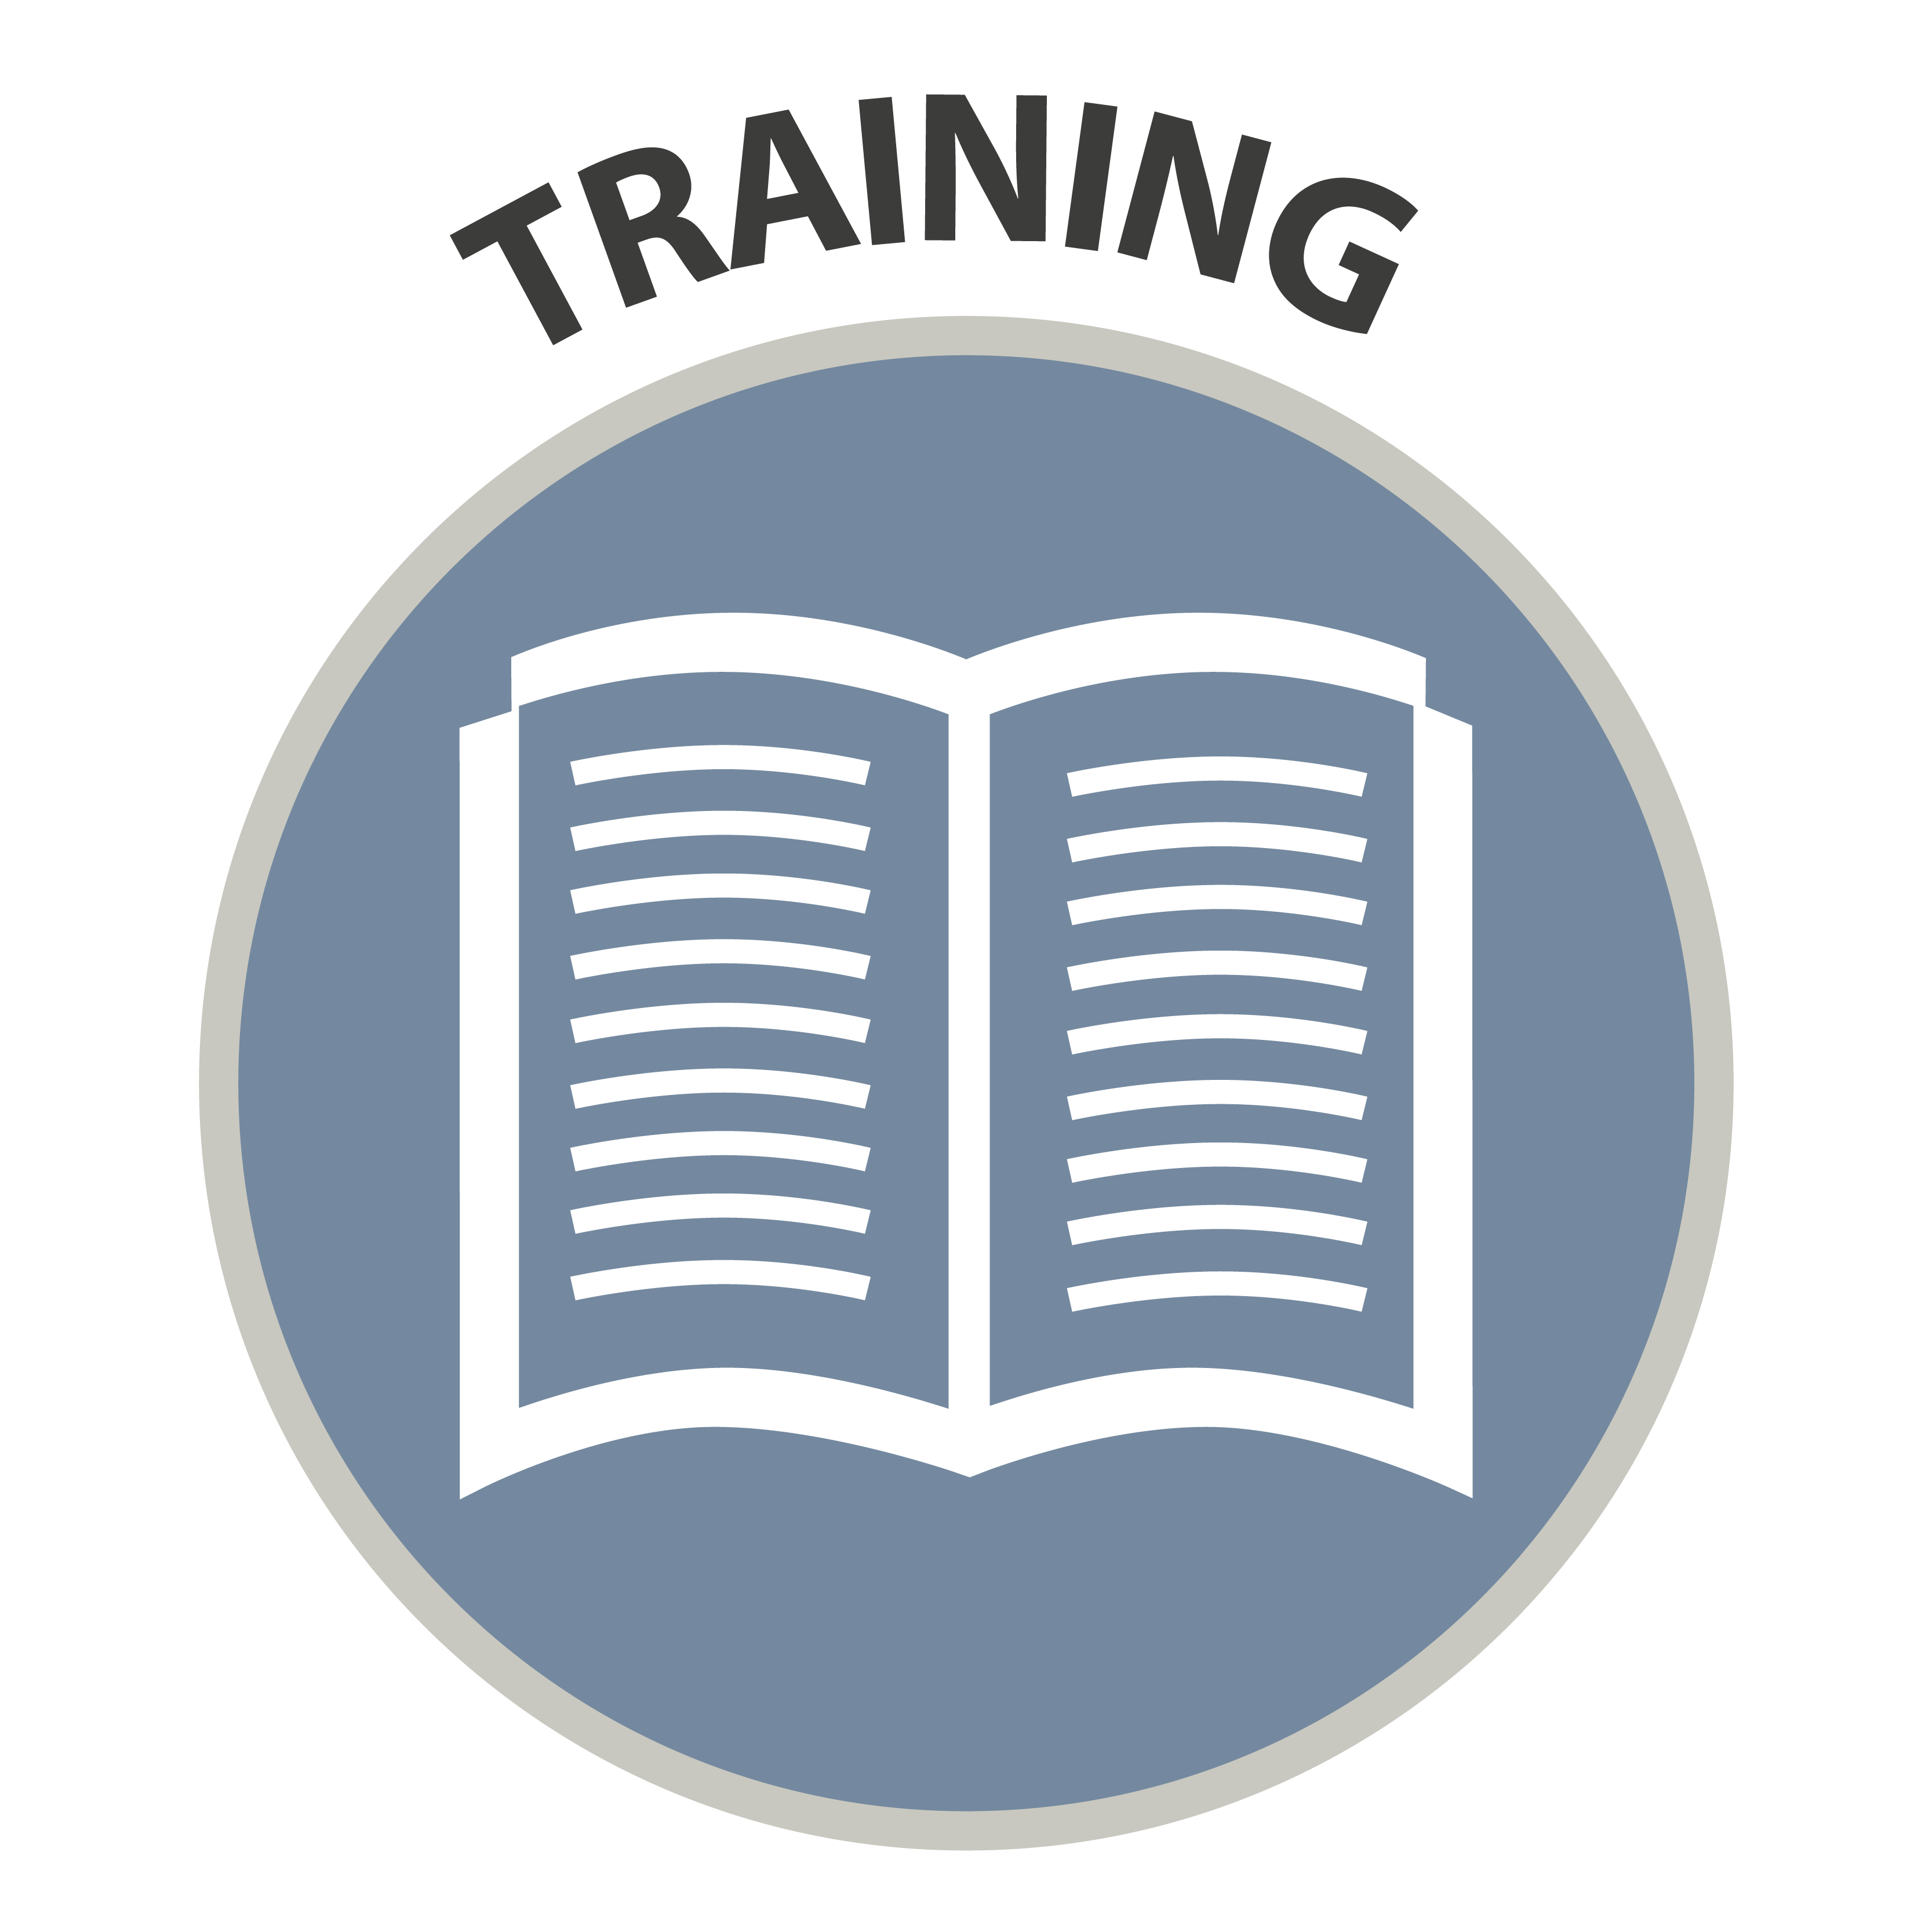 Training - icon of an open book